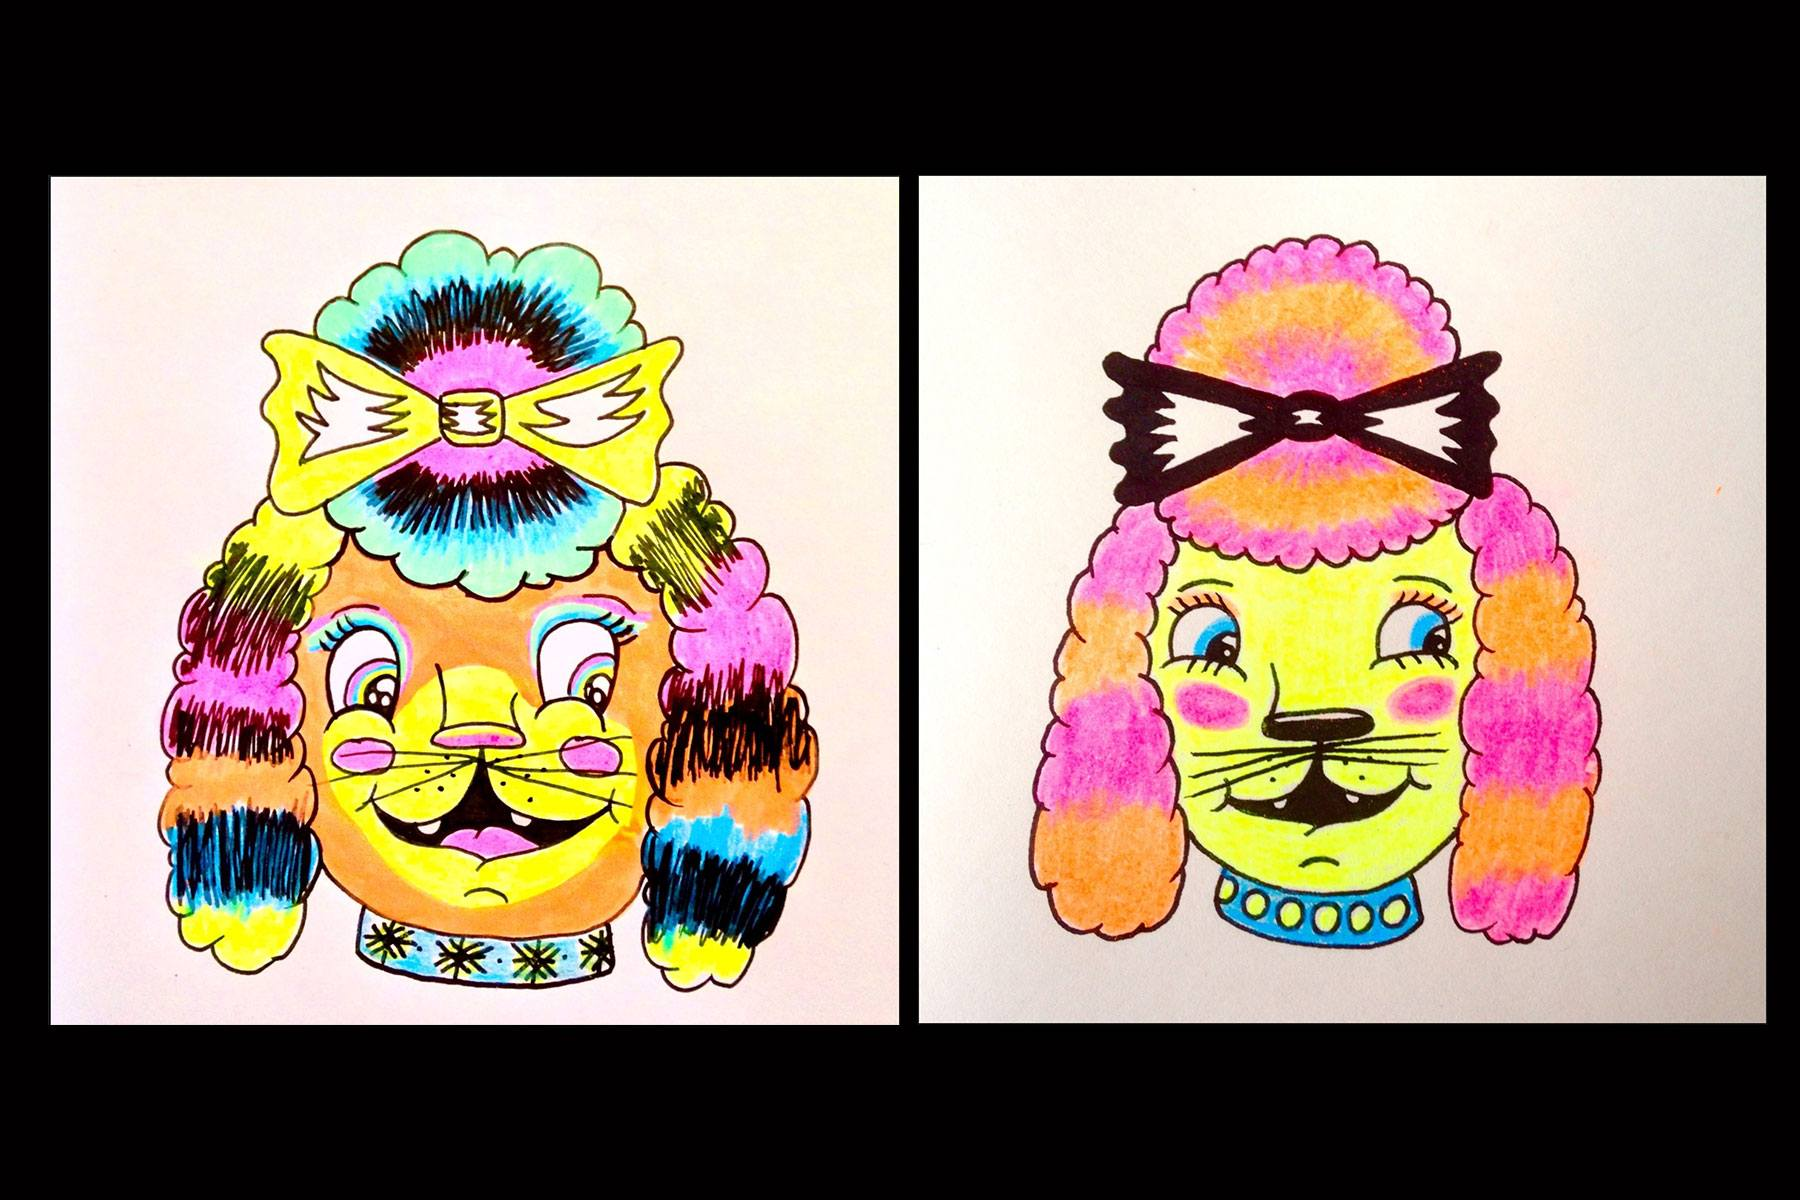 Colorful poodle drawings by the artist known as Pacolli. Ponyboy magazine.